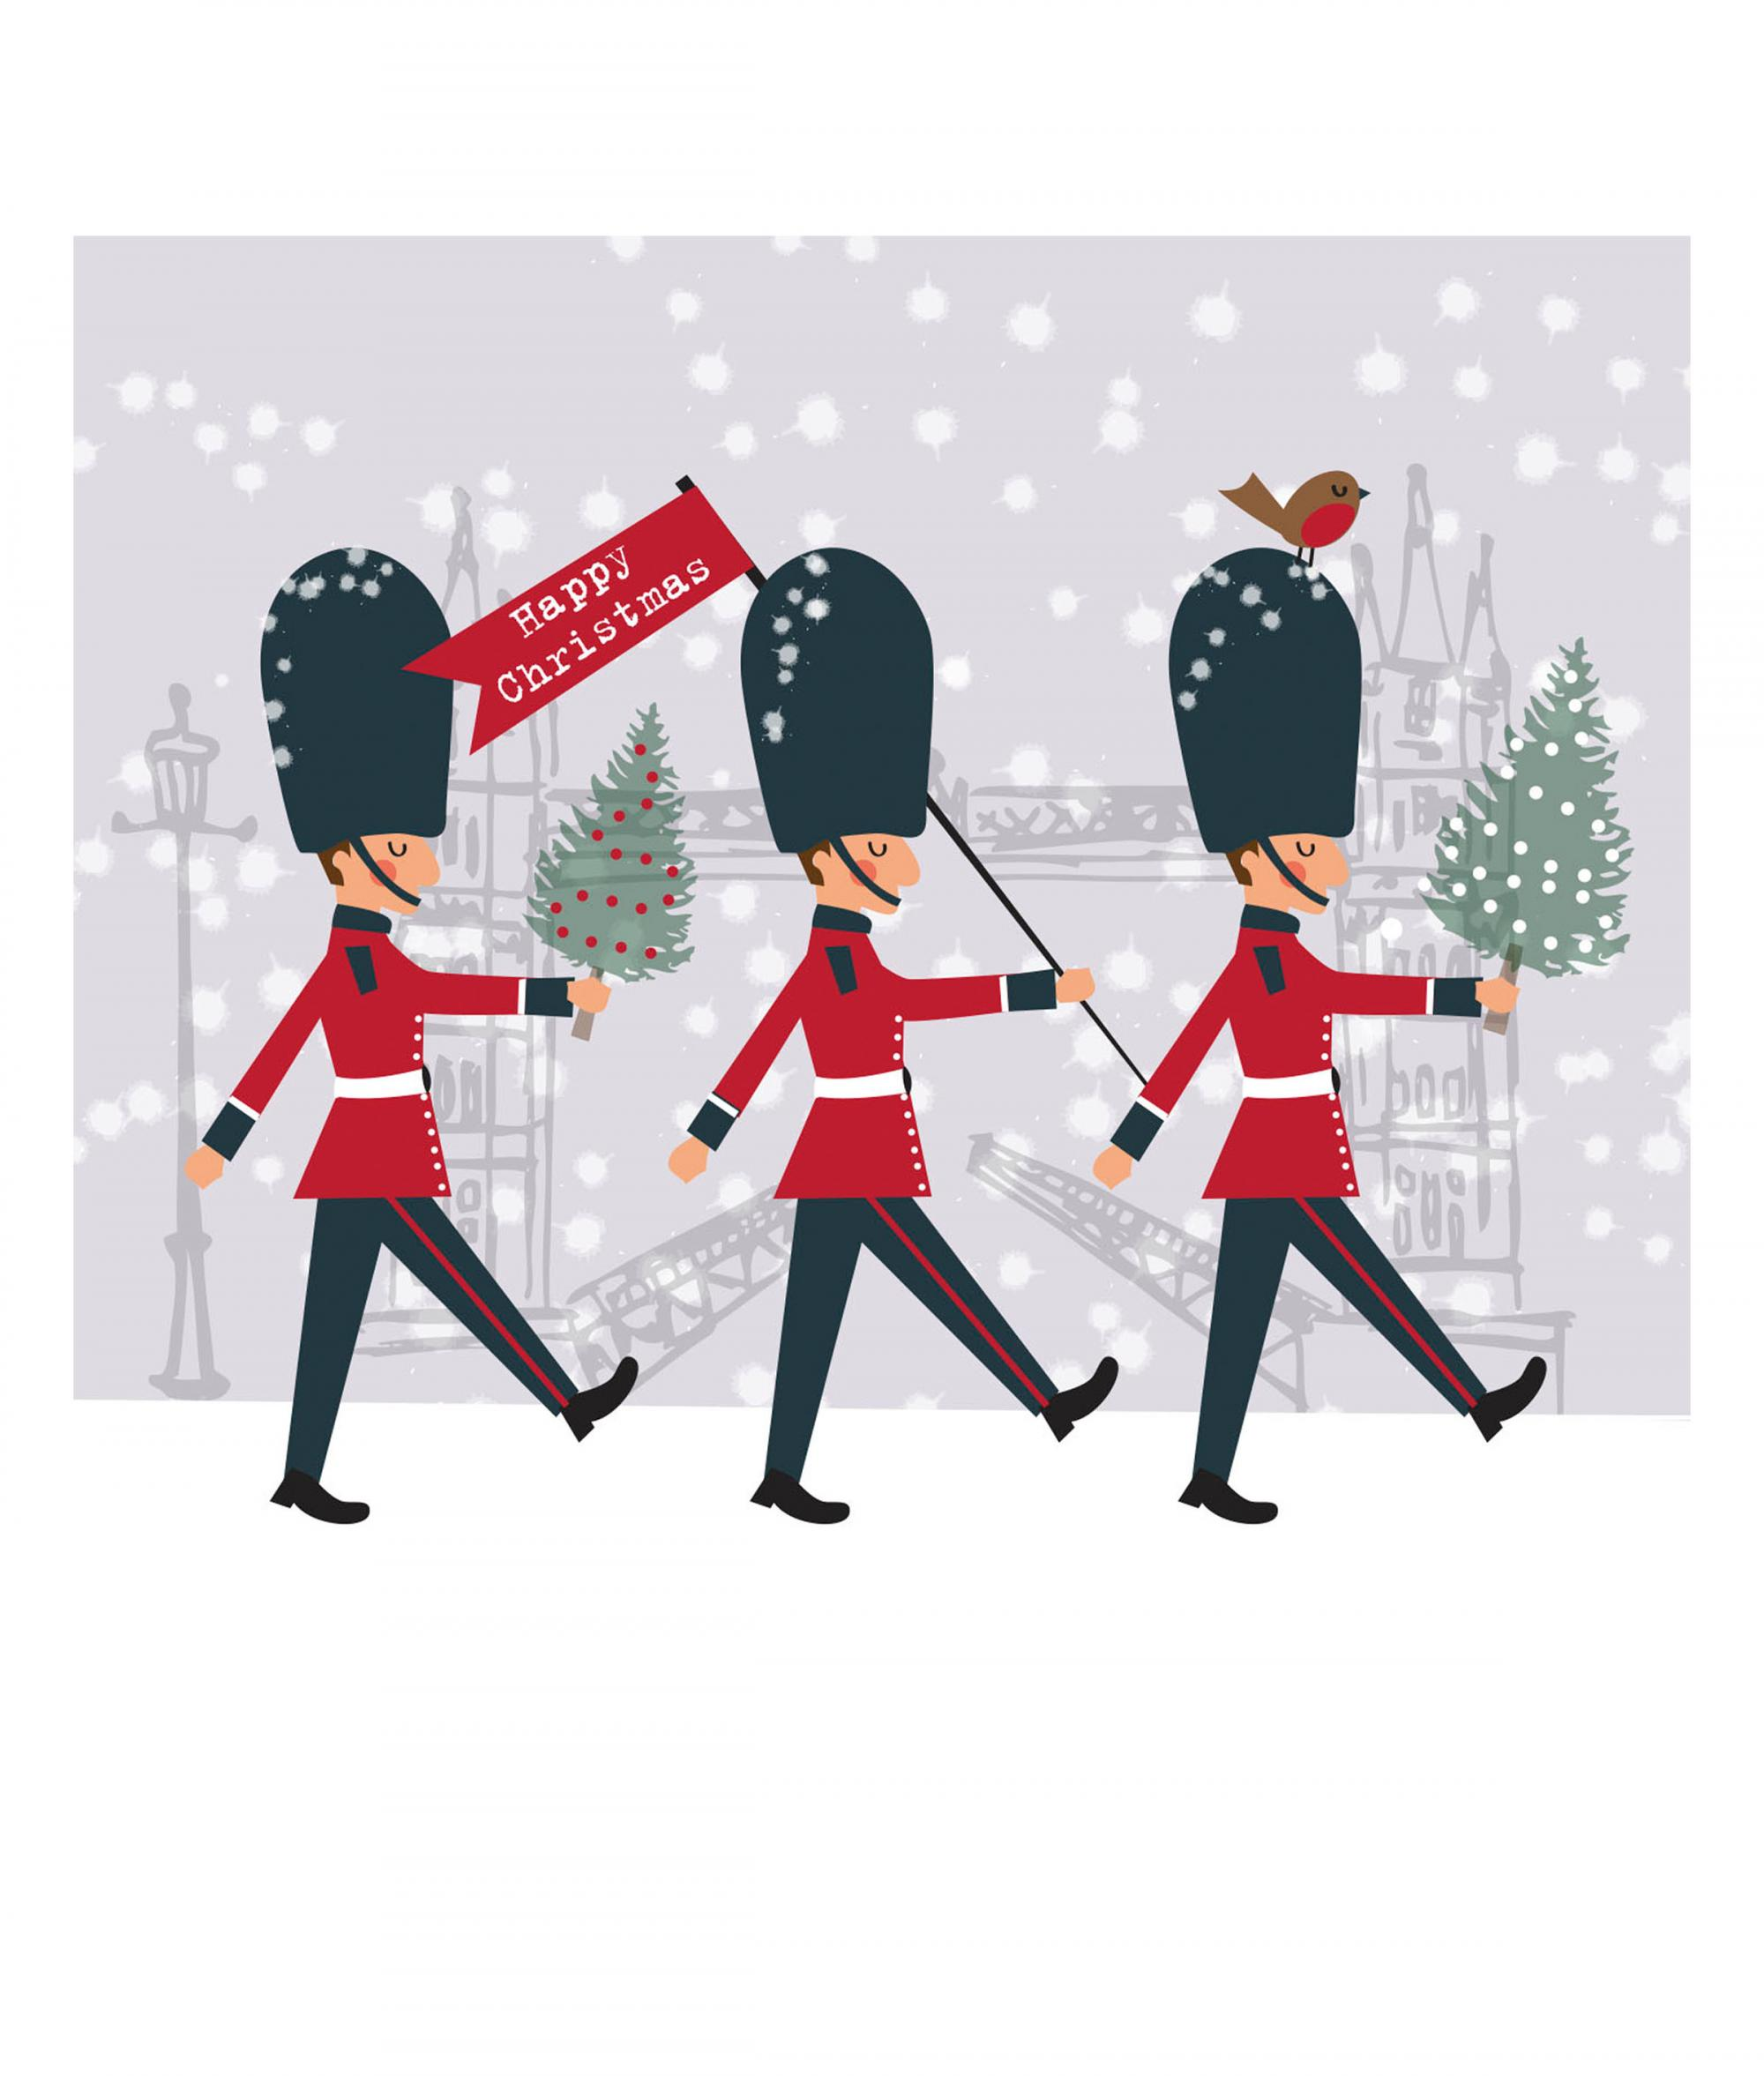 London Christmas Card - Pack of 10 | Cancer Research UK Online Shop